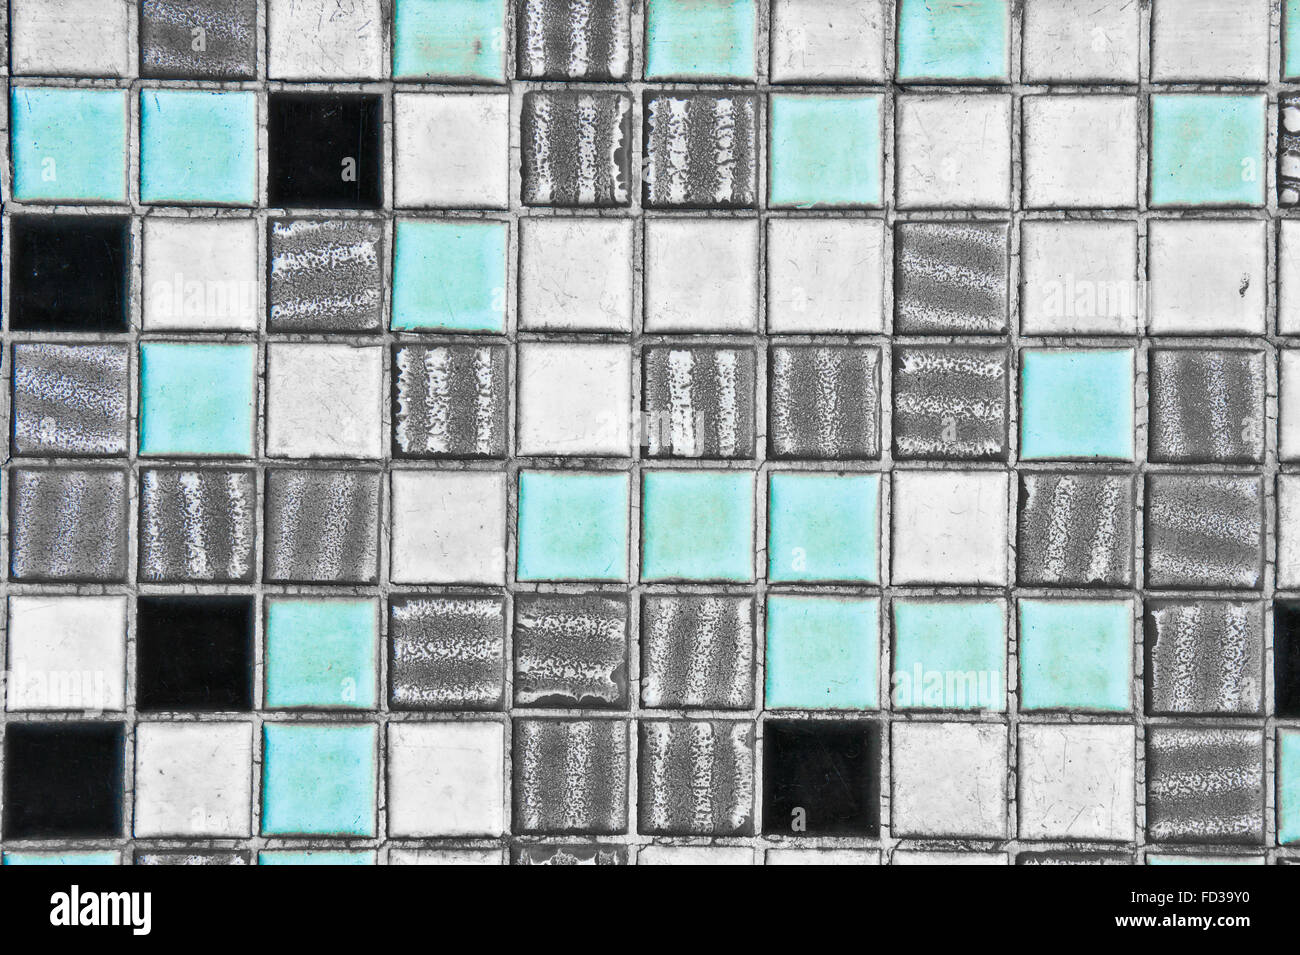 A wall of old blue, white,grey and black tiles as a background image ...